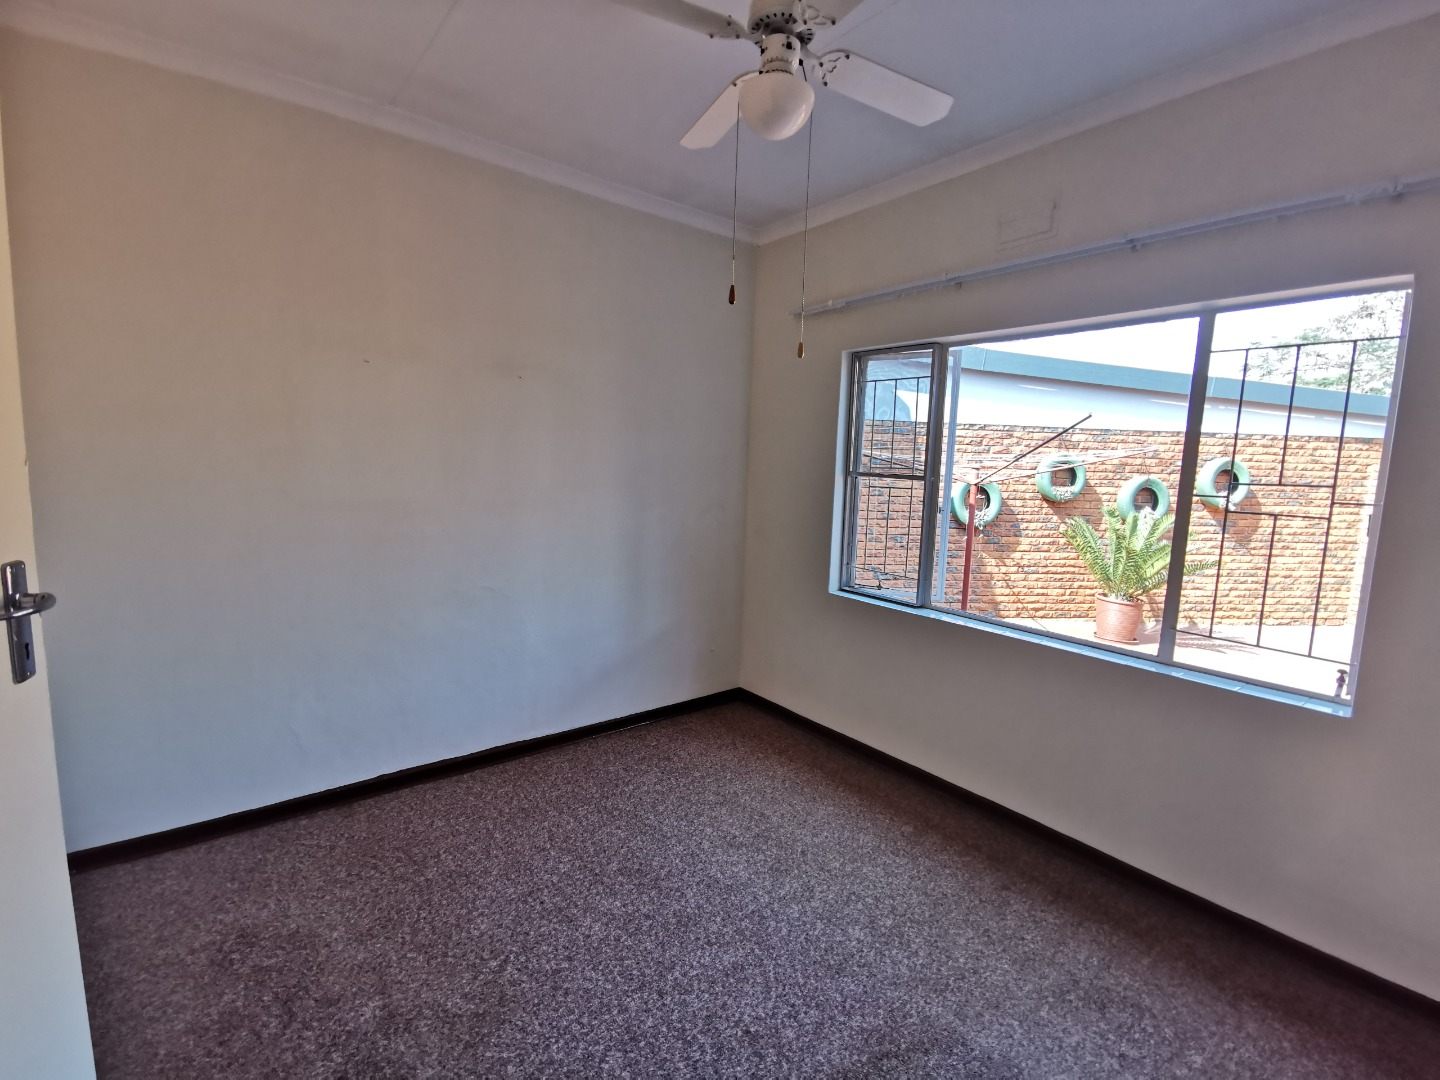 4 Bedroom Apartment / Flat For Sale in Chroompark